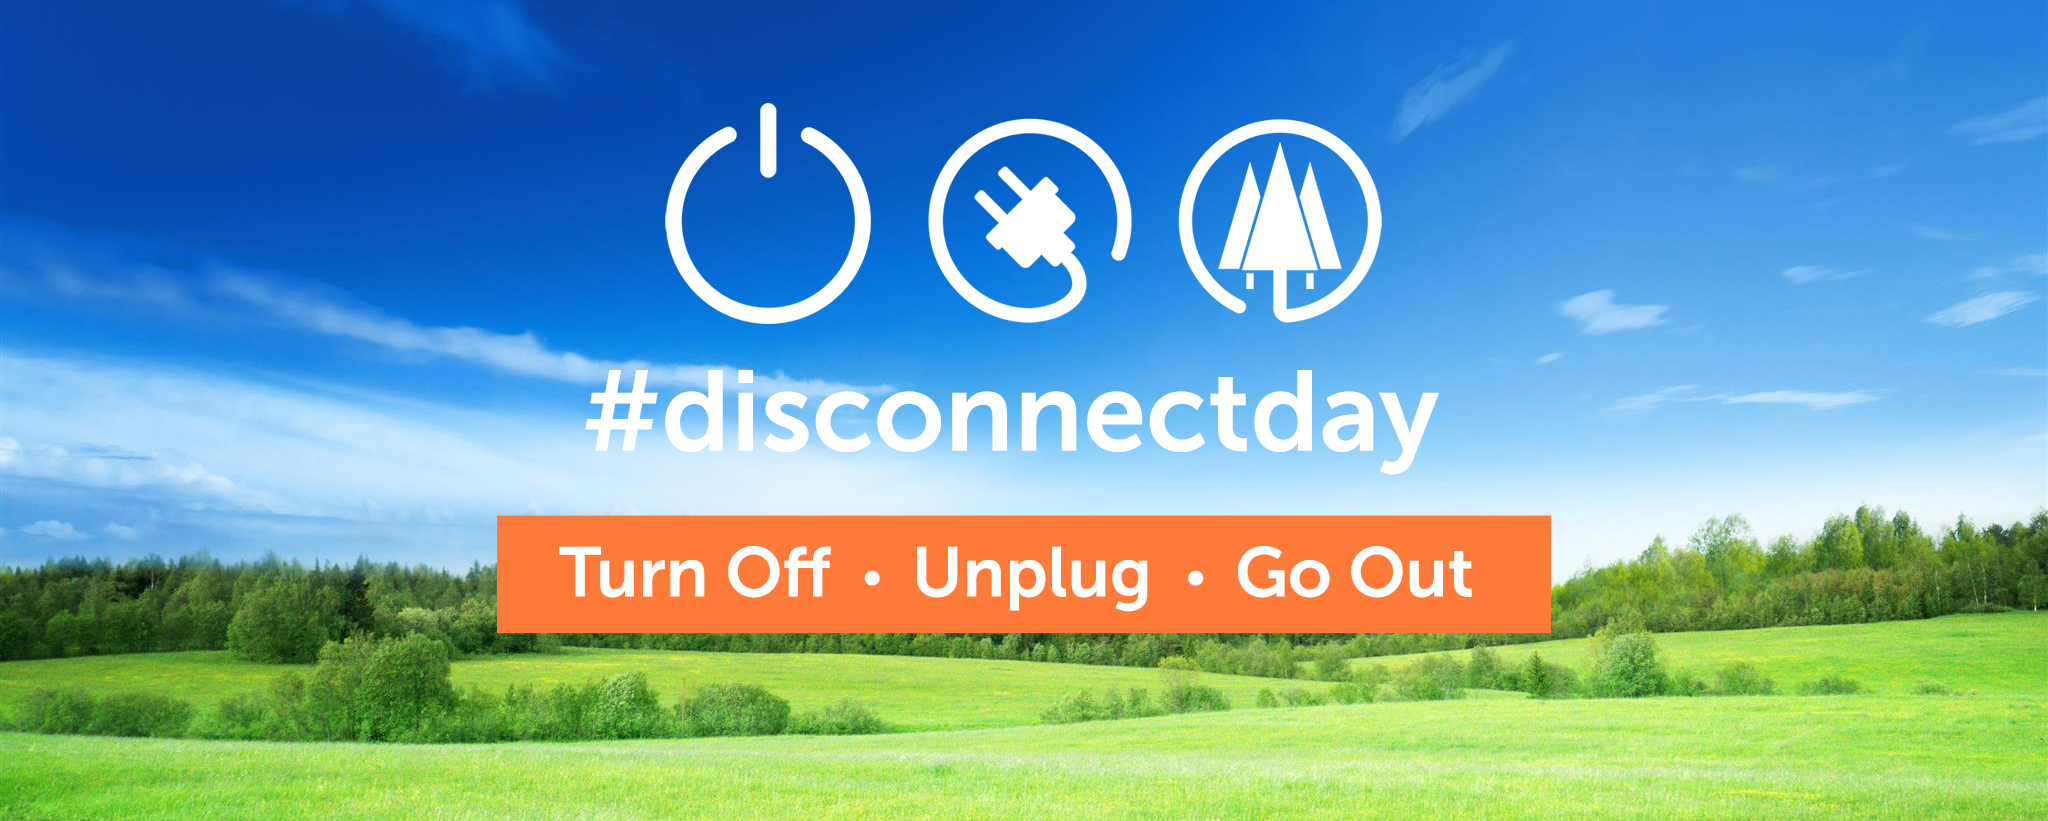 Disconnect Day - 21st June 2018